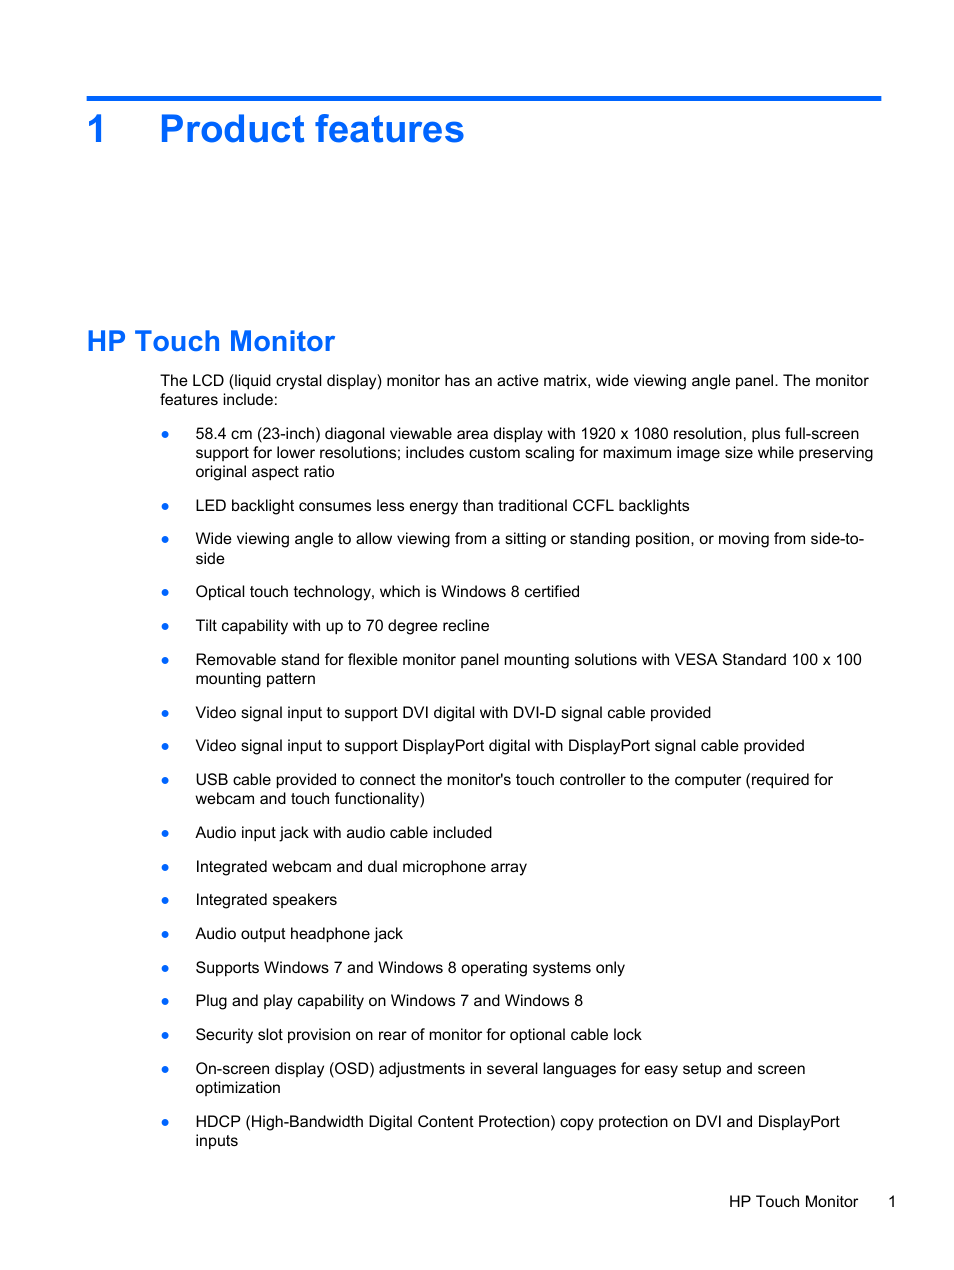 Product features, Hp touch monitor, 1 product features | HP